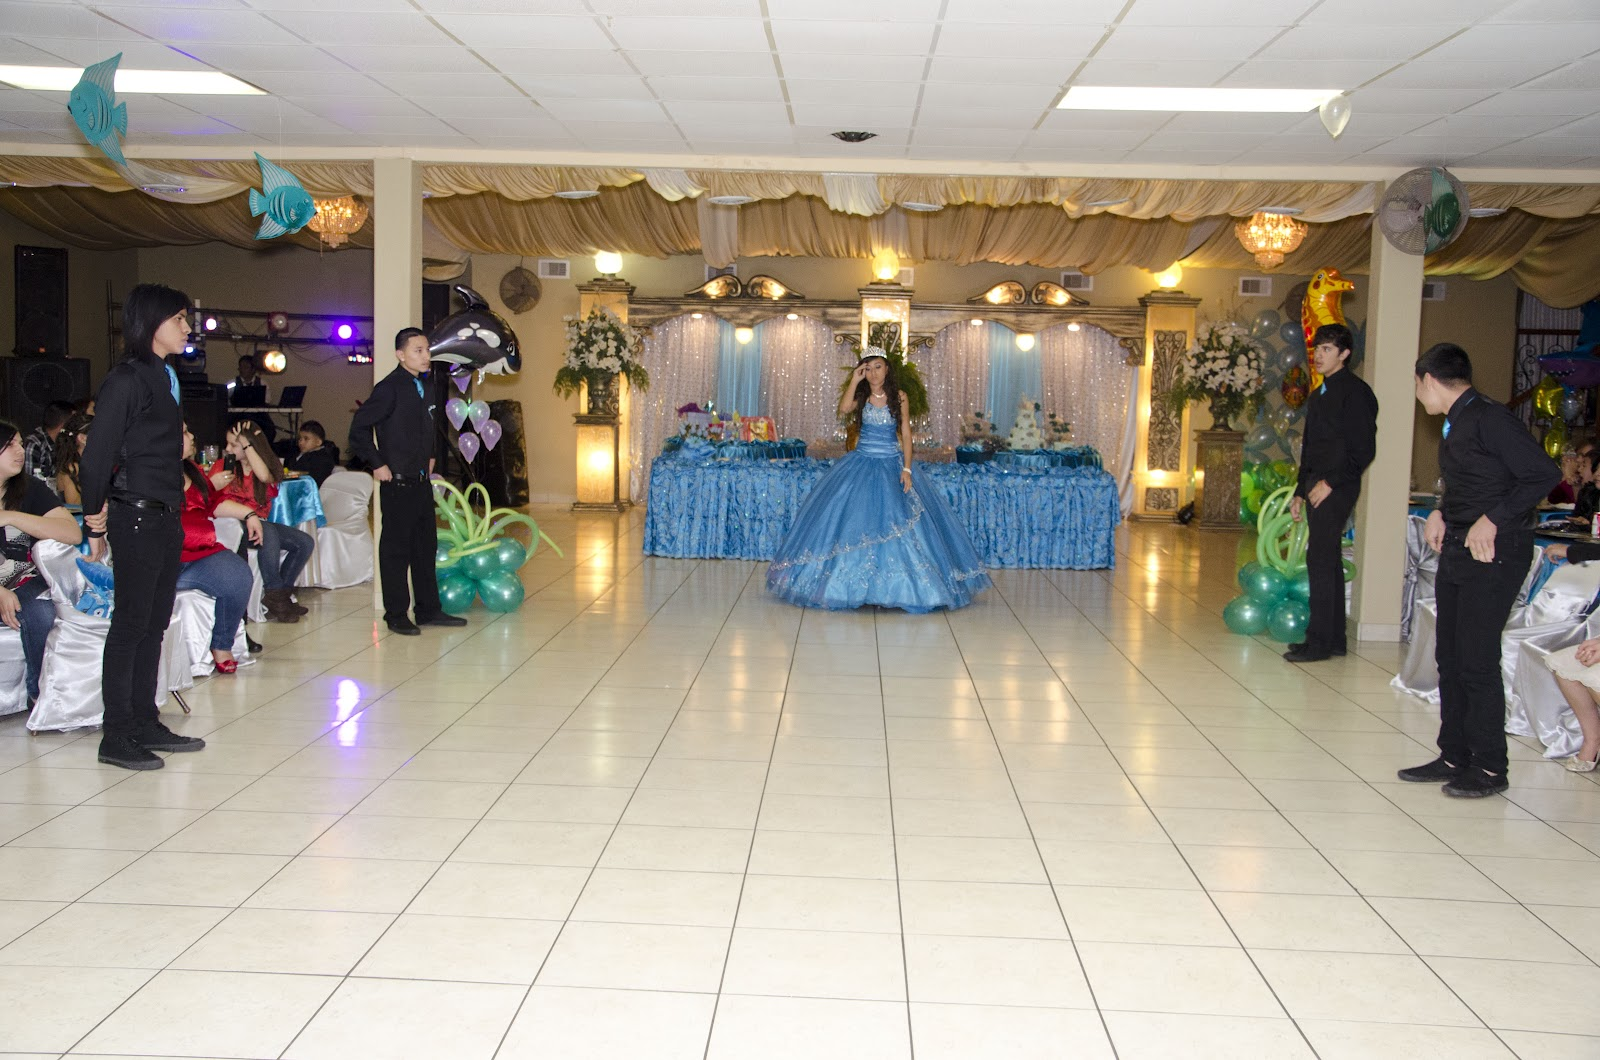 Rincon Real Hall Decorations 2012